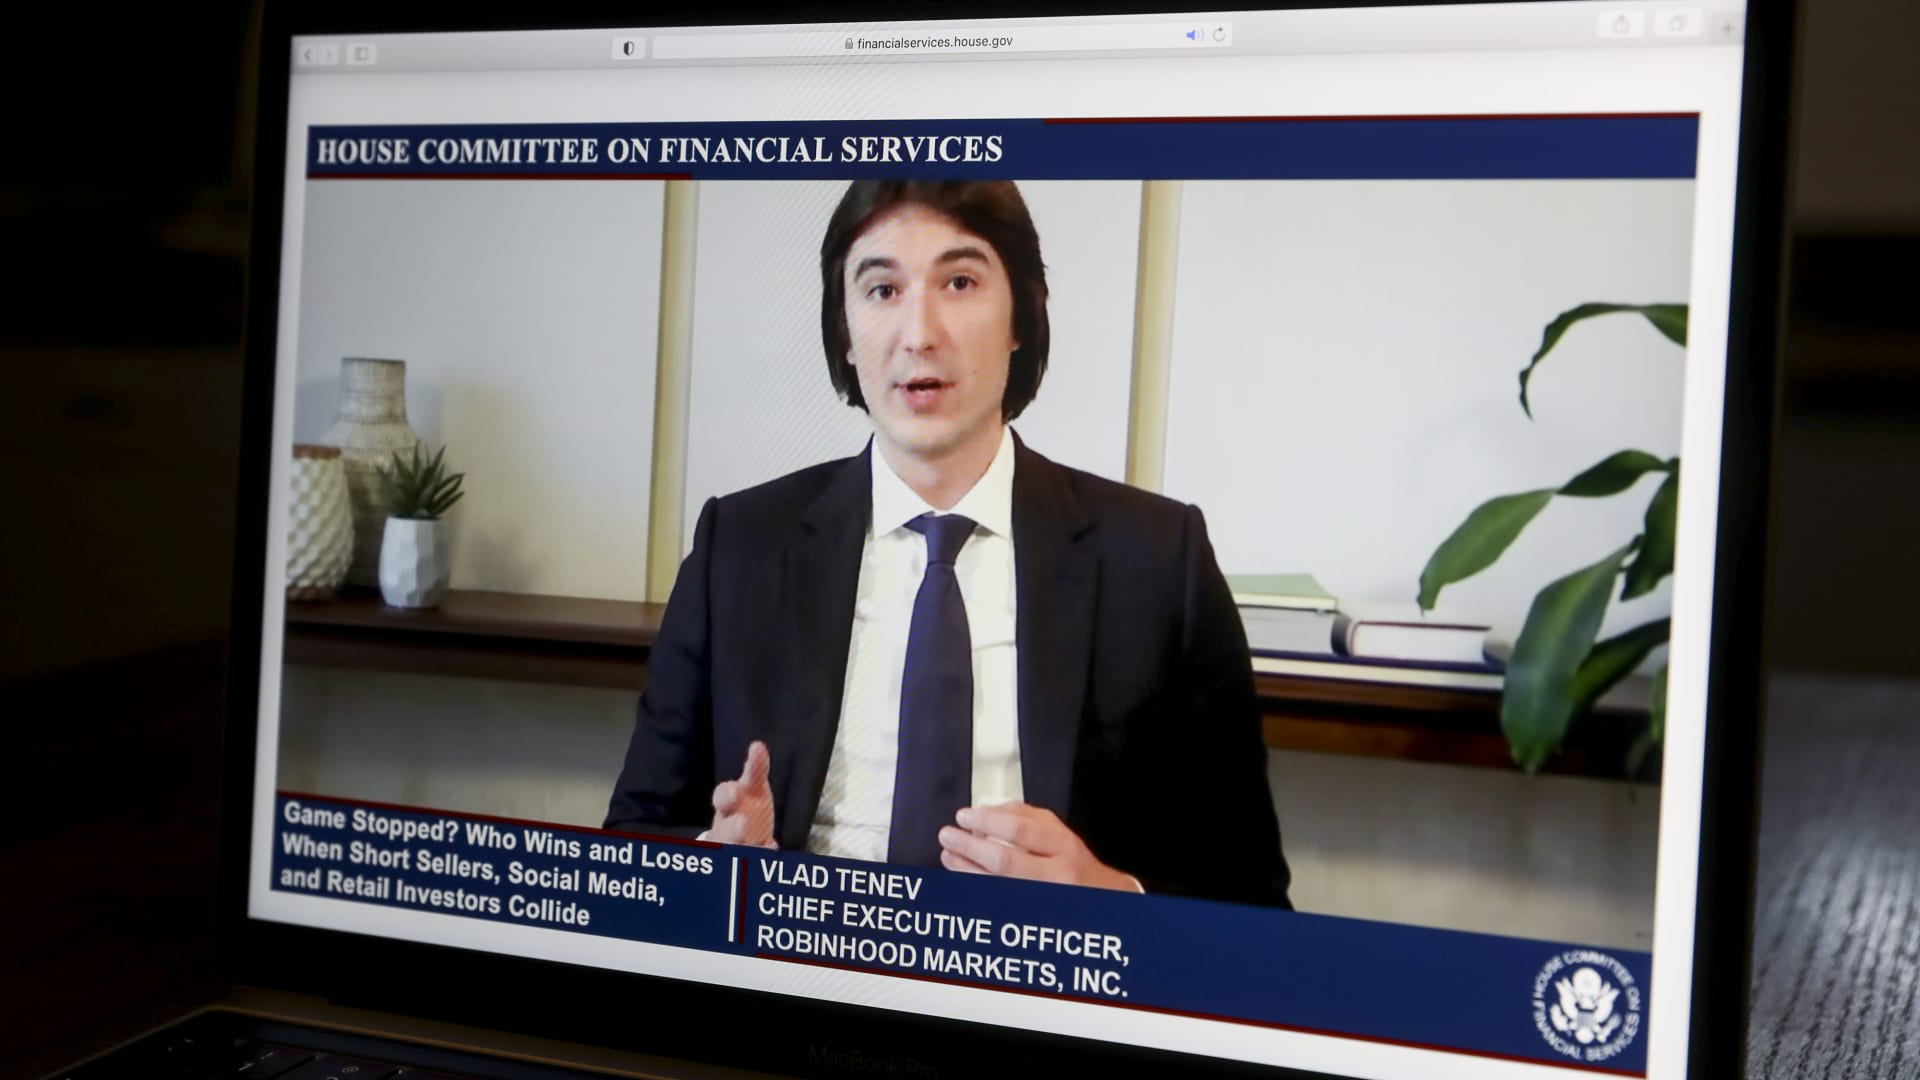 Vlad Tenev, chief executive officer and co-founder of Robinhood Markets Inc., speaks virtually during a House Financial Services Committee hearing on a laptop computer in Tiskilwa, Illinois, U.S., on Thursday, Feb. 18, 2021.